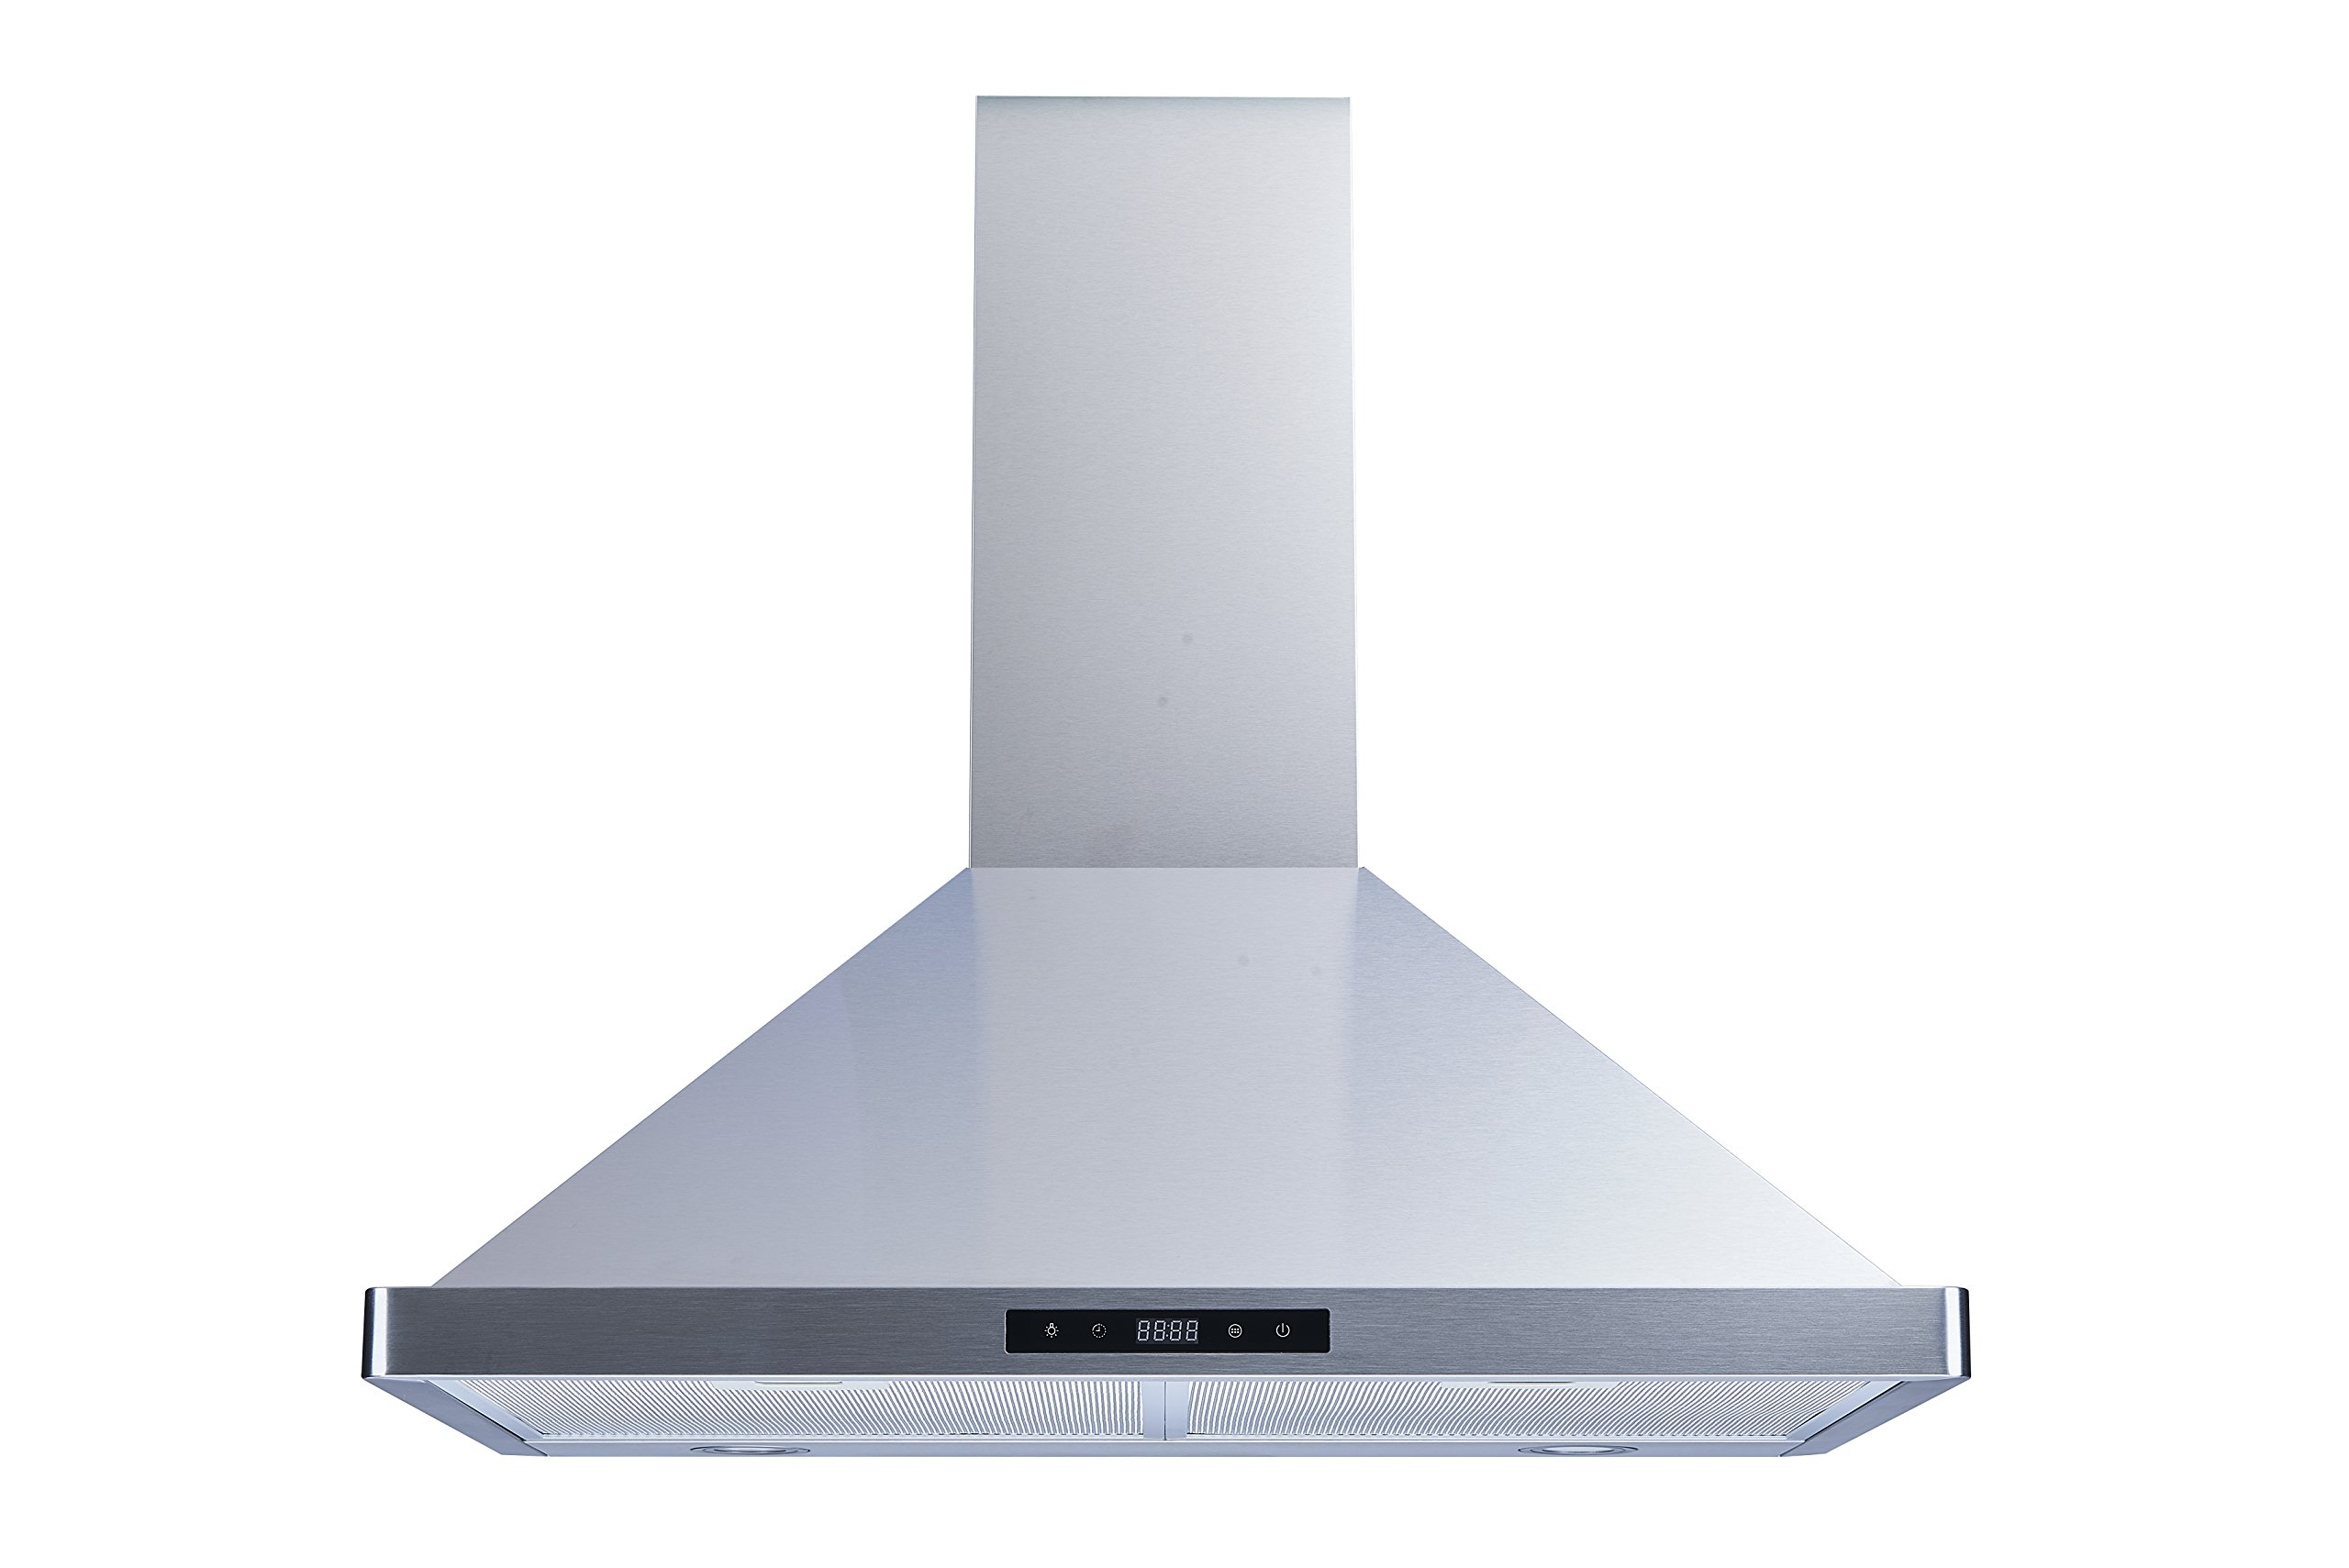 Winflo 30'' Wall Mount Stainless Steel Convertible Kitchen Range Hood with 450 CFM Air Flow, Touch Control, Aluminum Filters and LED Lights by Winflo